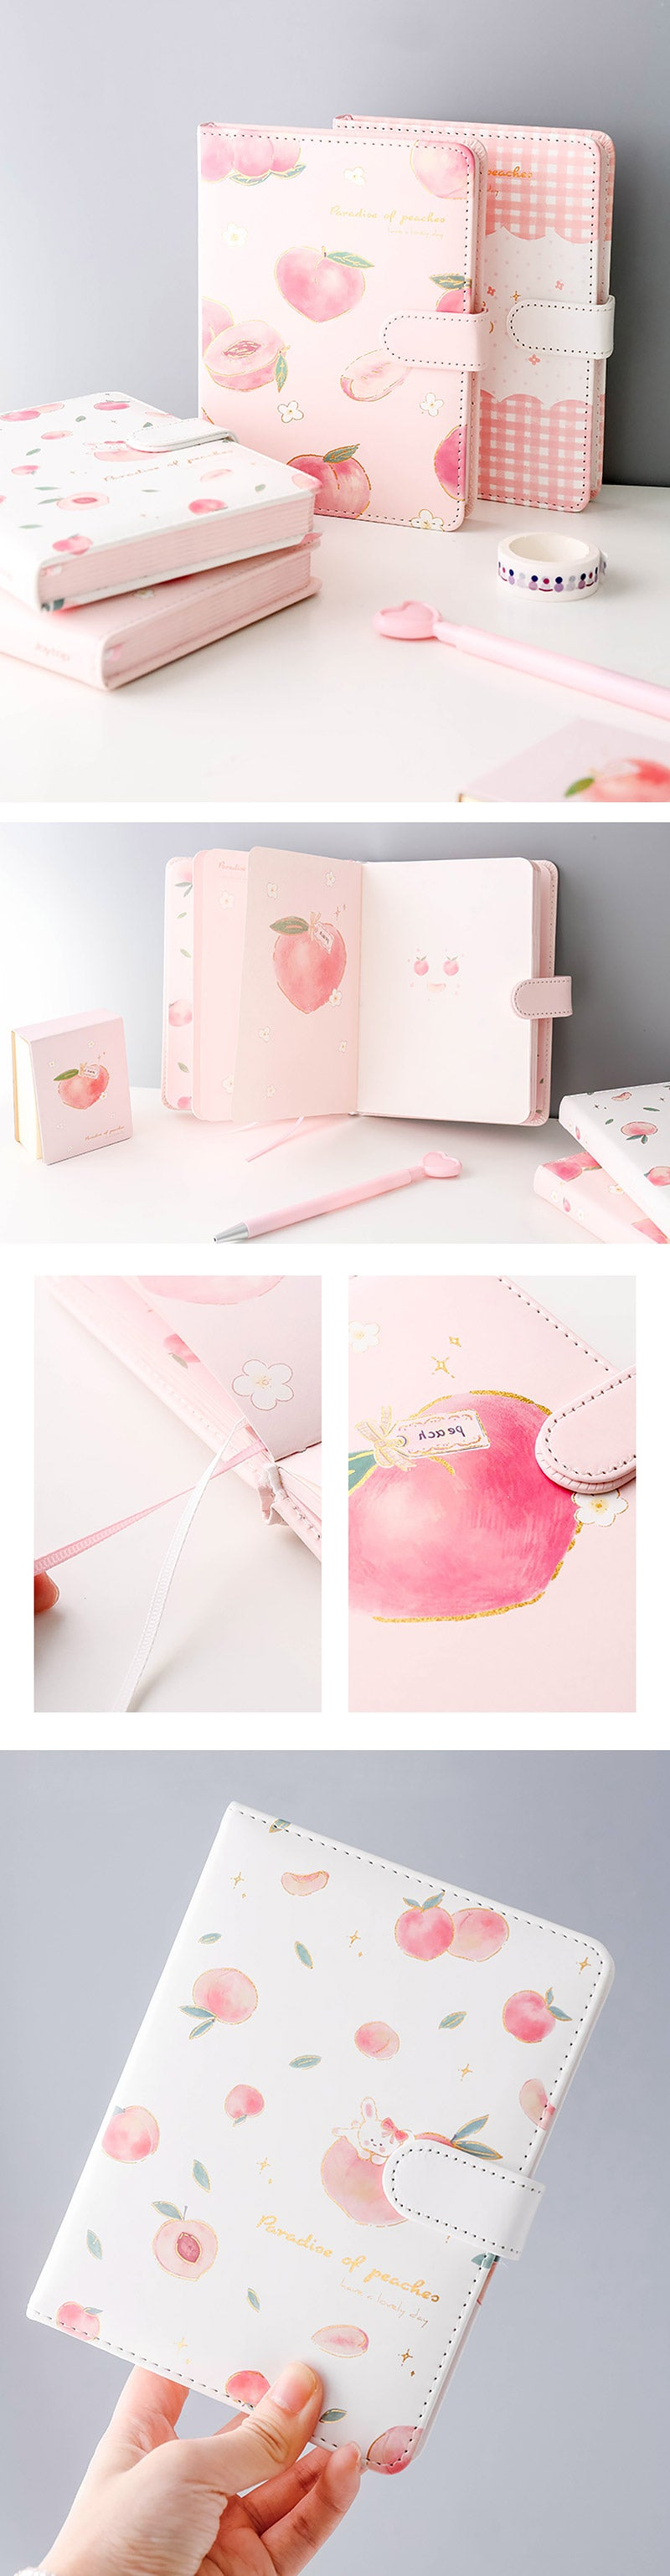 A5 A6 Peach Pink Personal Journal Notebook - Detail